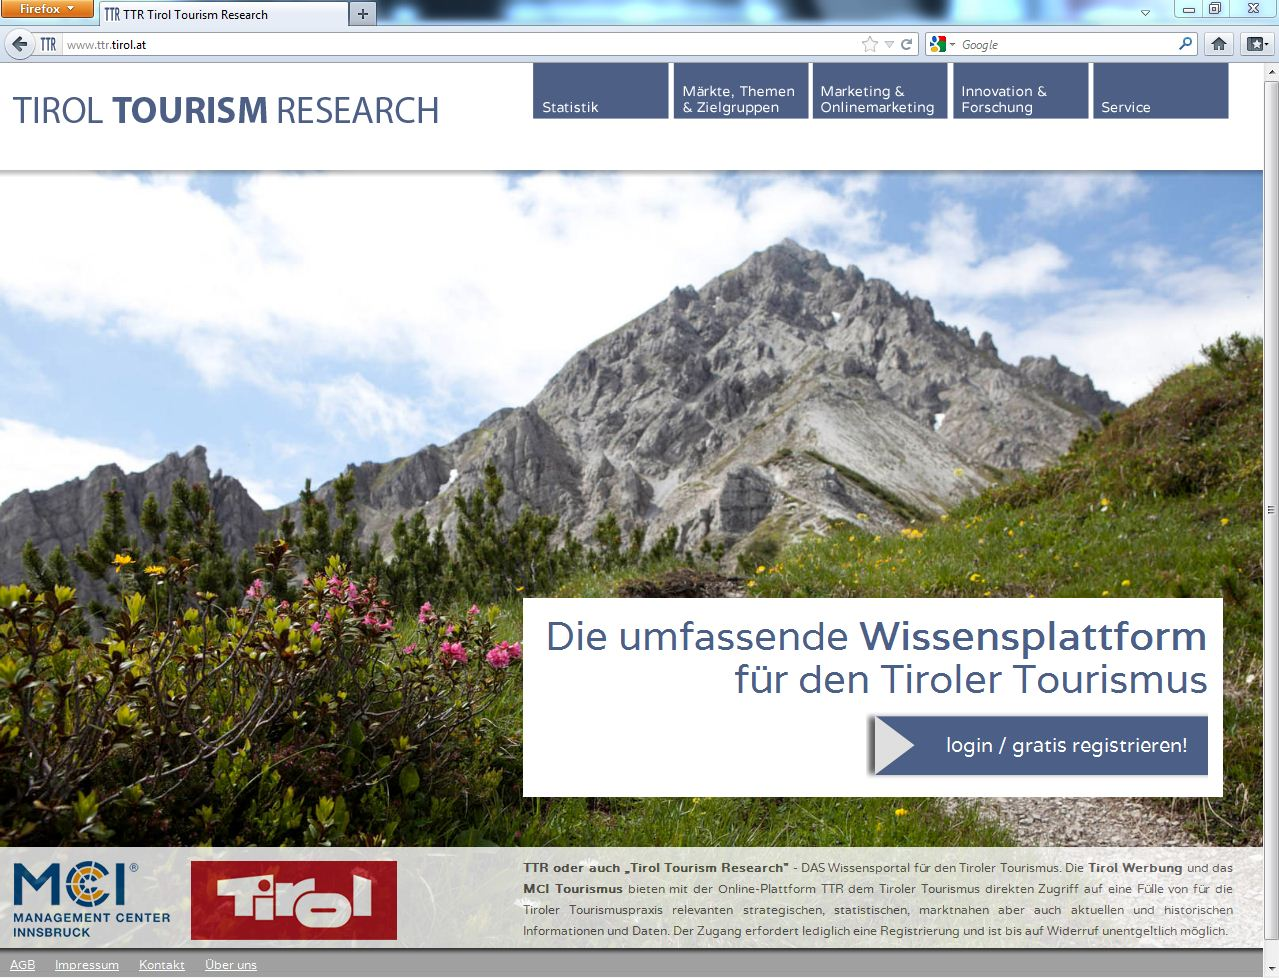 TTR 2.0 Screenshot Tirol Tourism Research